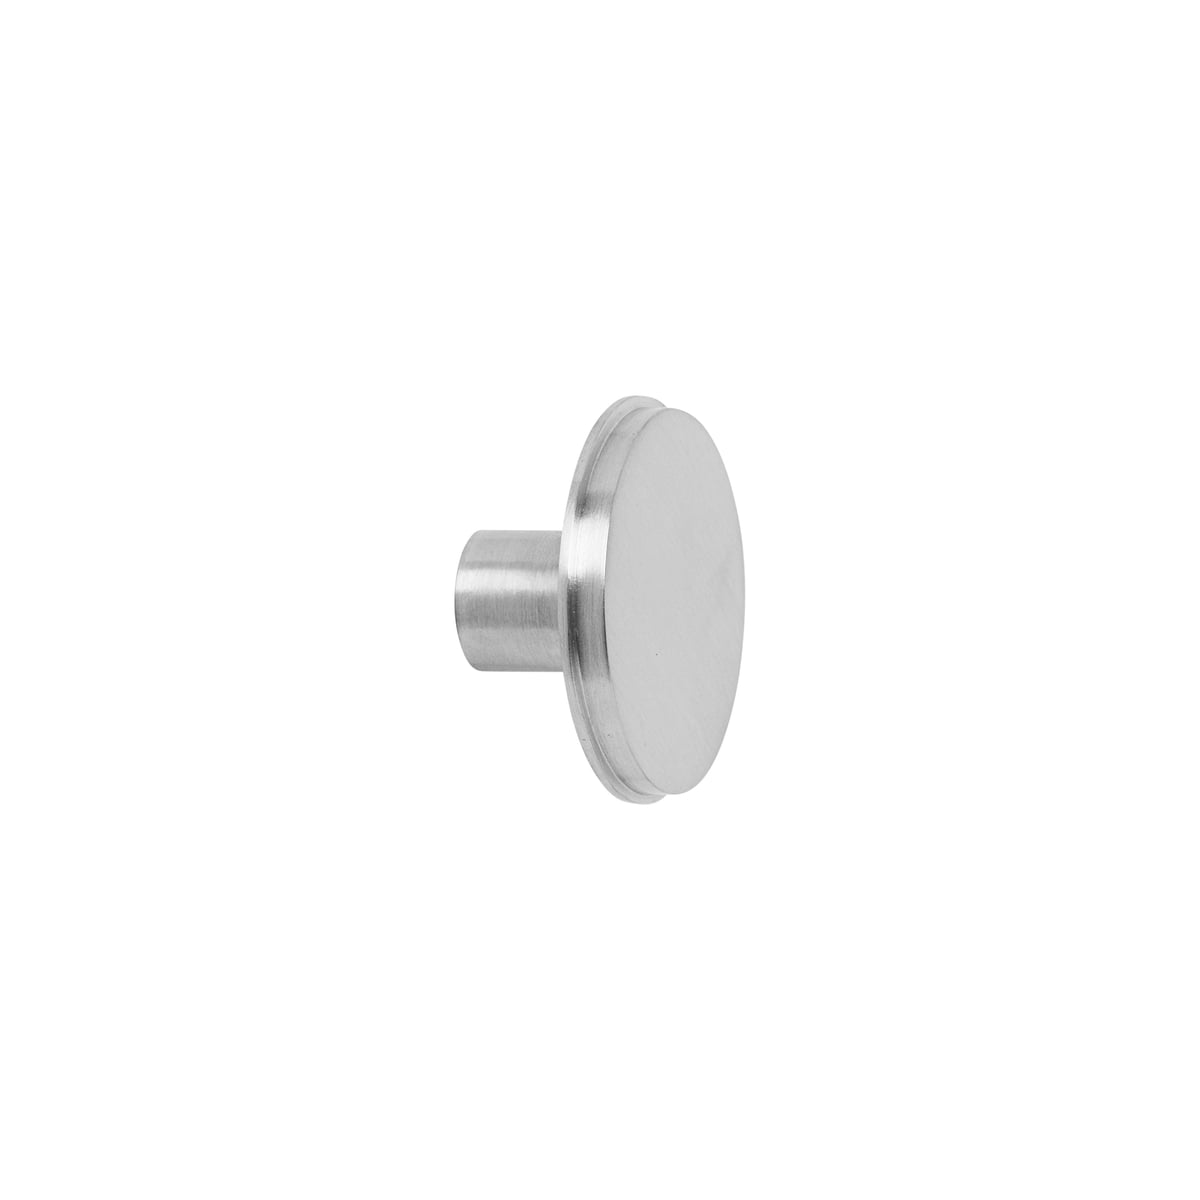 ferm living - Wall hook small, stainless steel